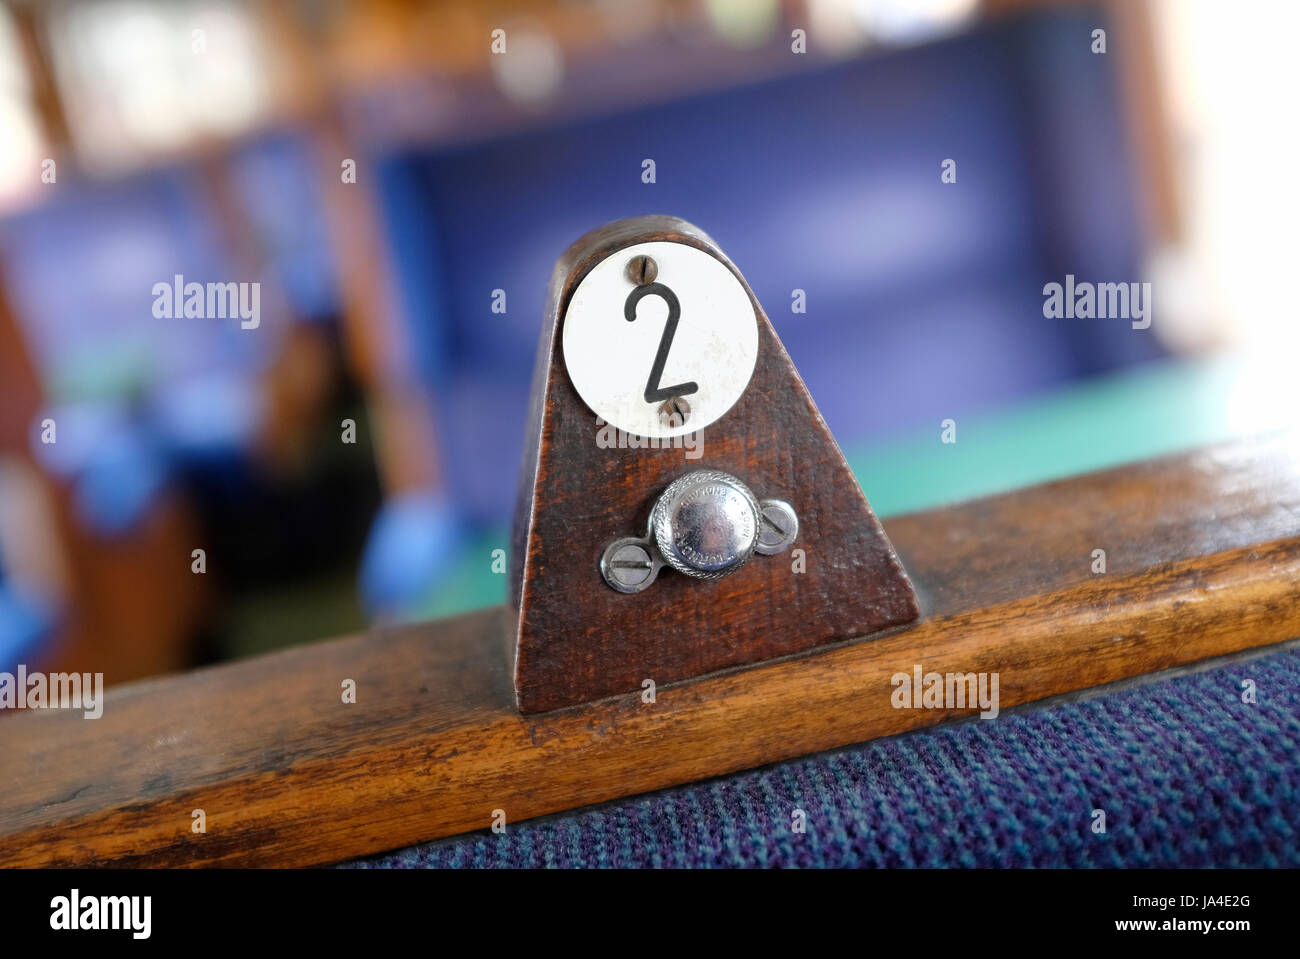 number 2 seat in old railway carriage - Stock Image